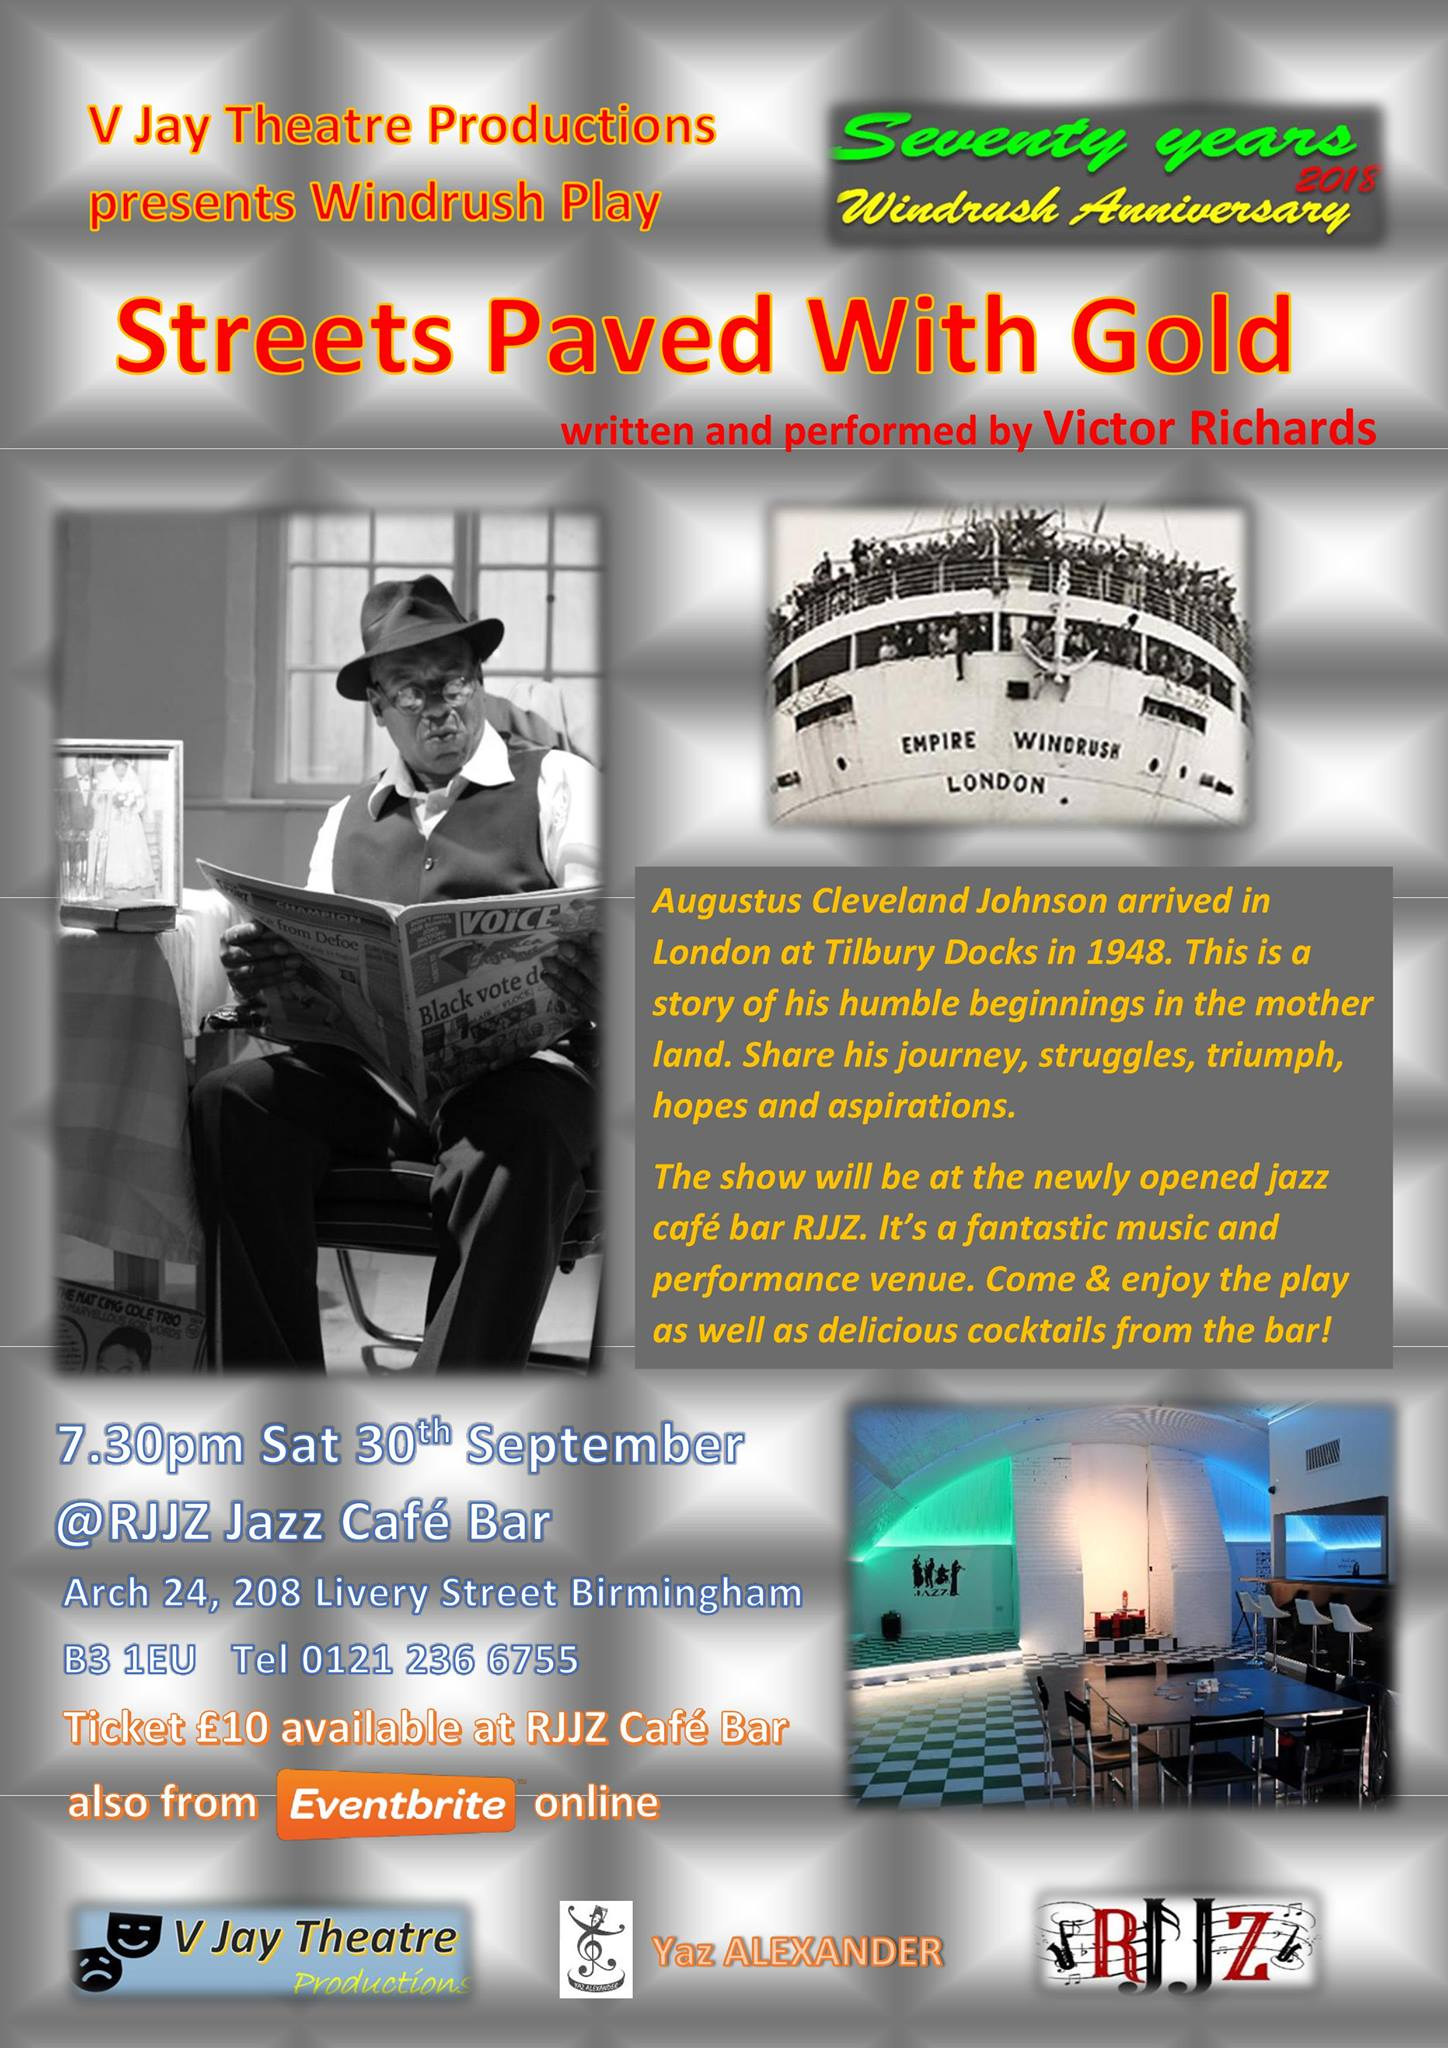 Windrush play STREETS PAVED WITH GOLD by Victor Richards at RJJZ jazz cafe bar in Birmingham | Blacknet UK